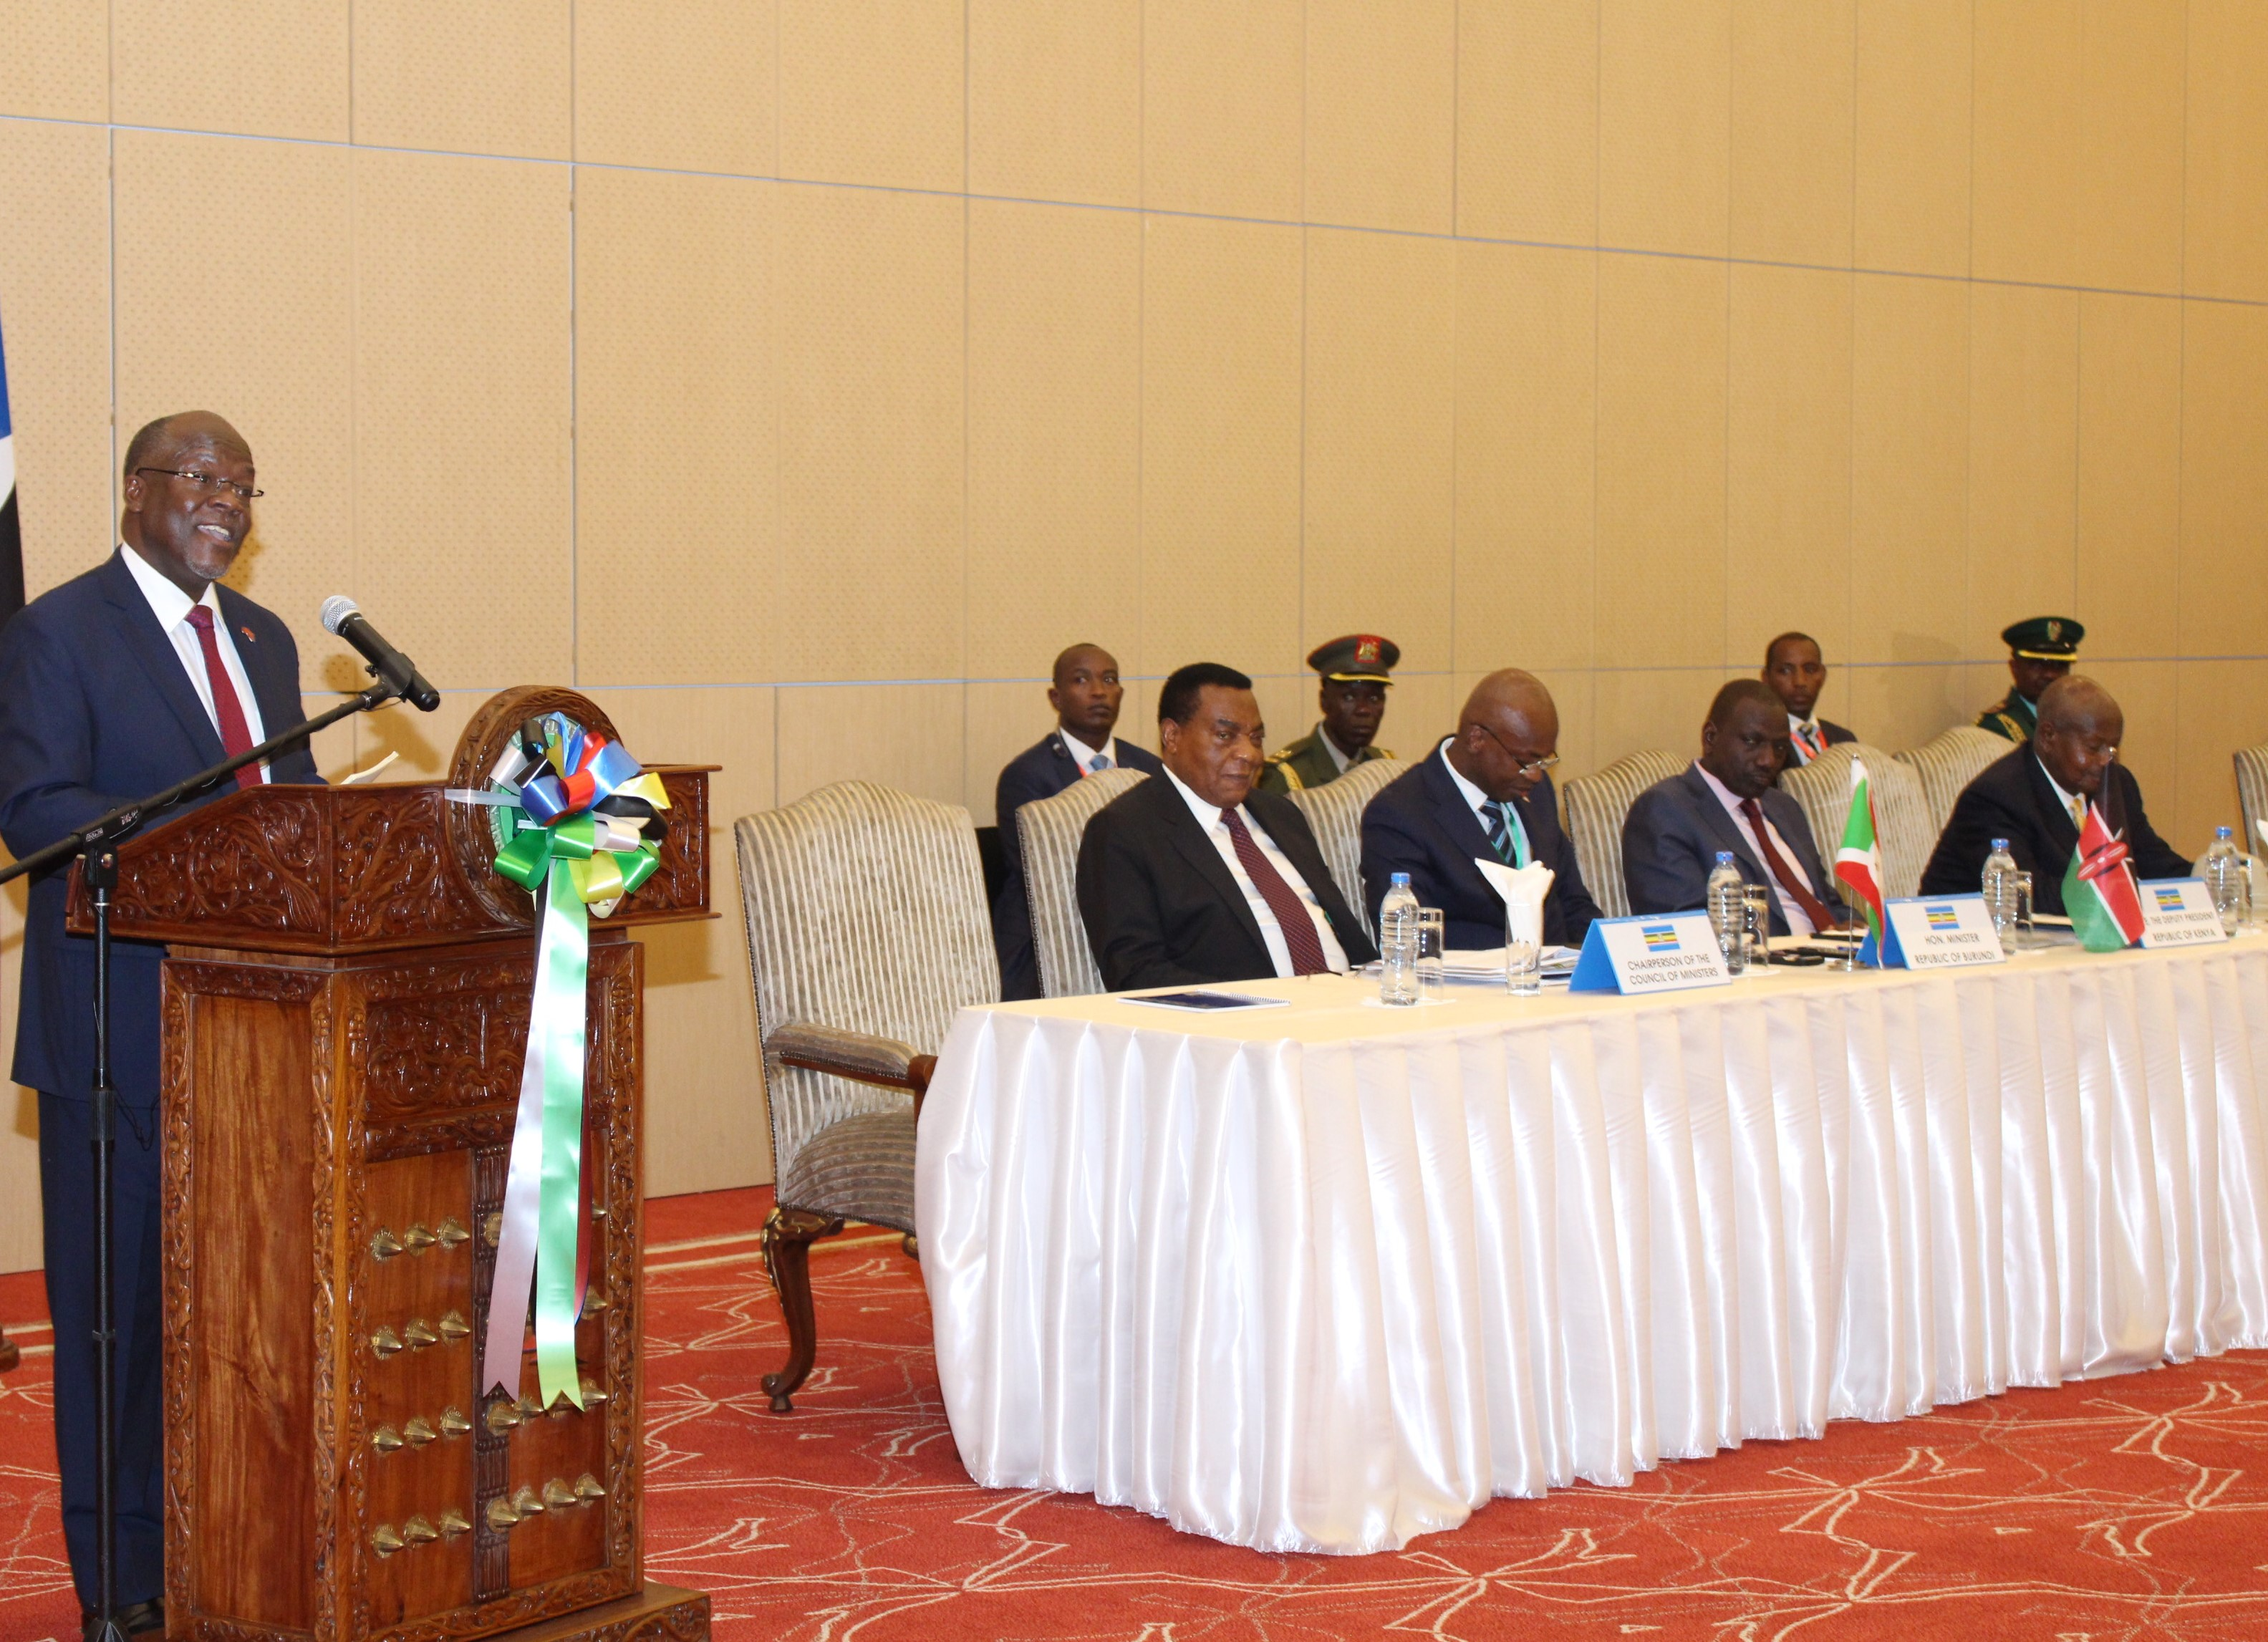 The President of the United Republic of Tanzania and Chairperson of the Summit of EAC Heads of State, H.E. John Pombe Joseph Magufuli addresses the recent Summit. H.E. John Pombe Joseph Magufuli addressed the Summit in Kiswahili